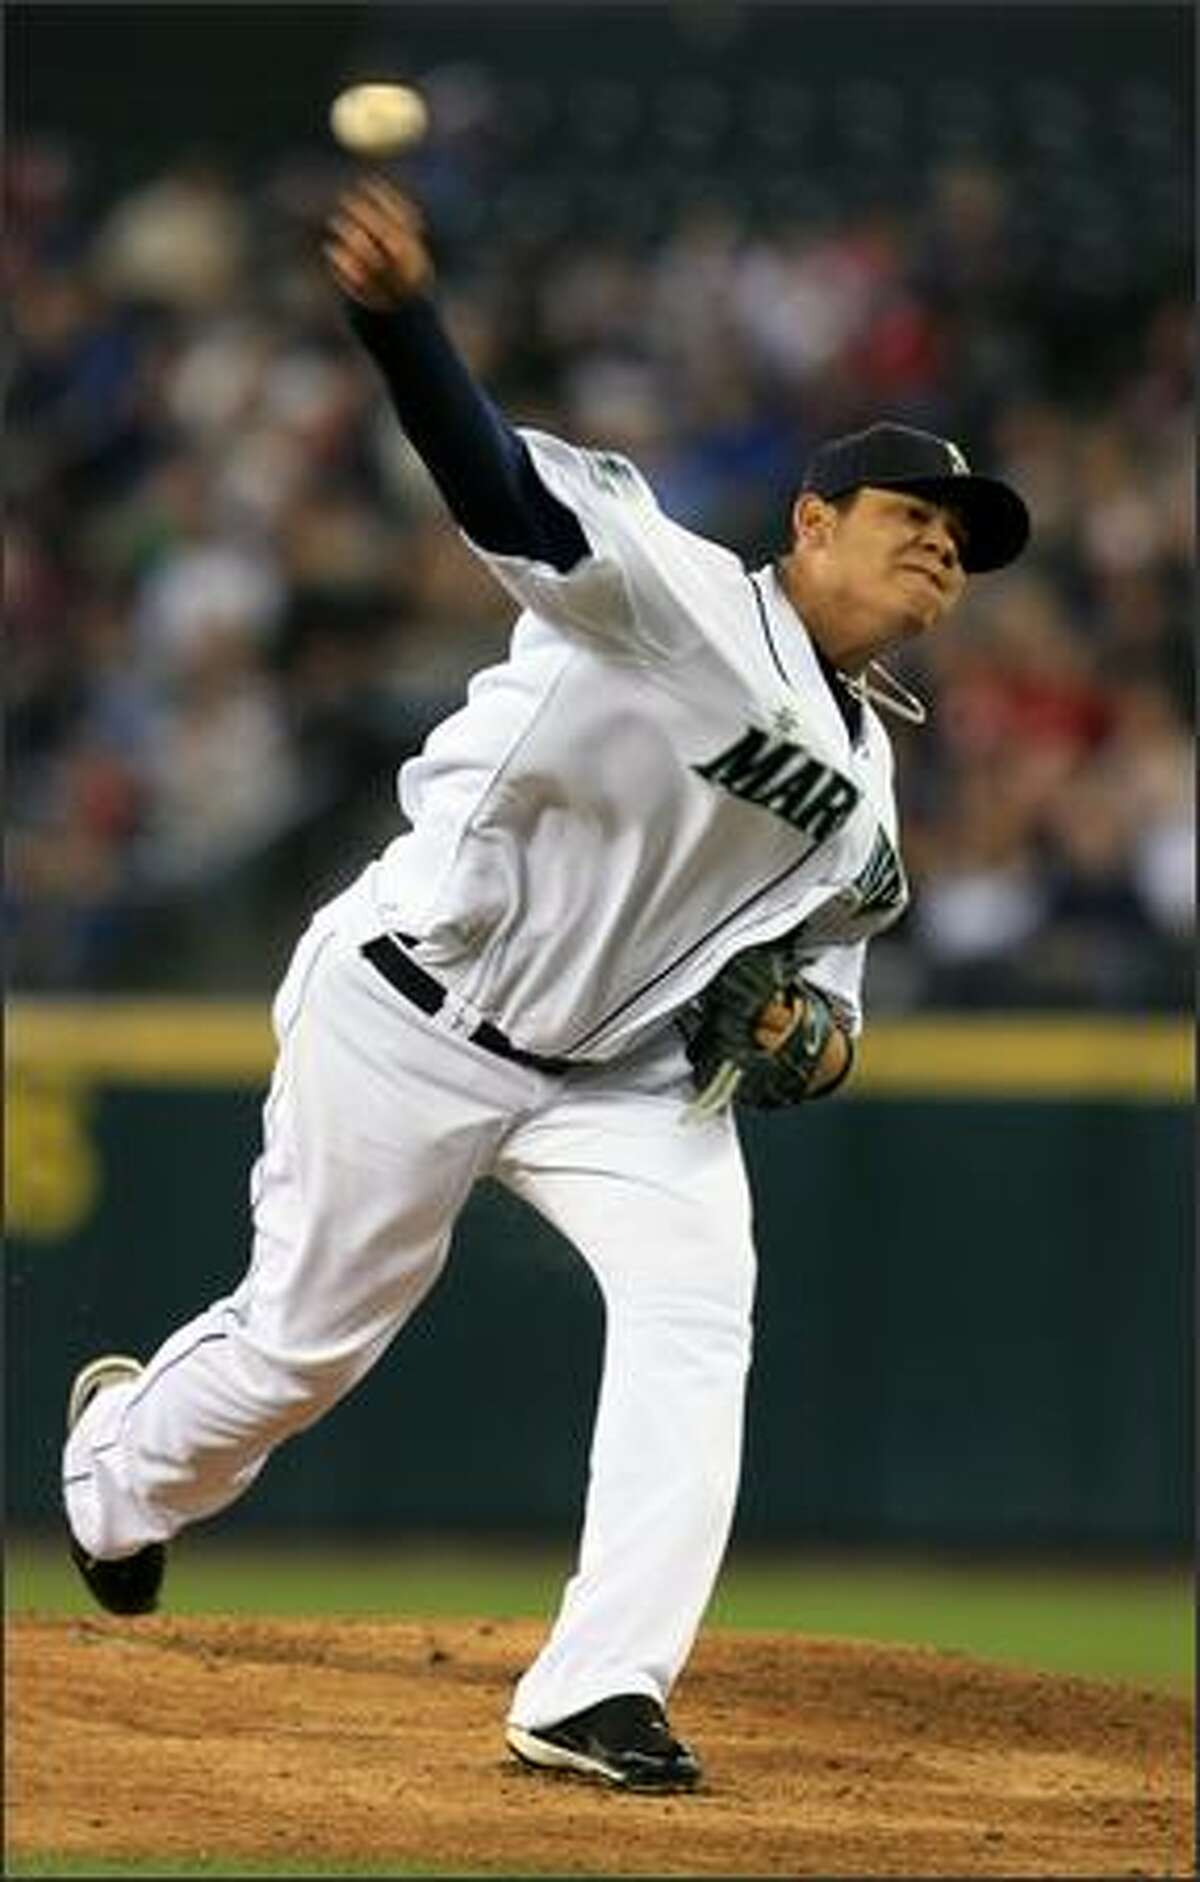 Seattle Mariners starter Felix Hernadez throws against the San Diego Padres during the 1st inning.